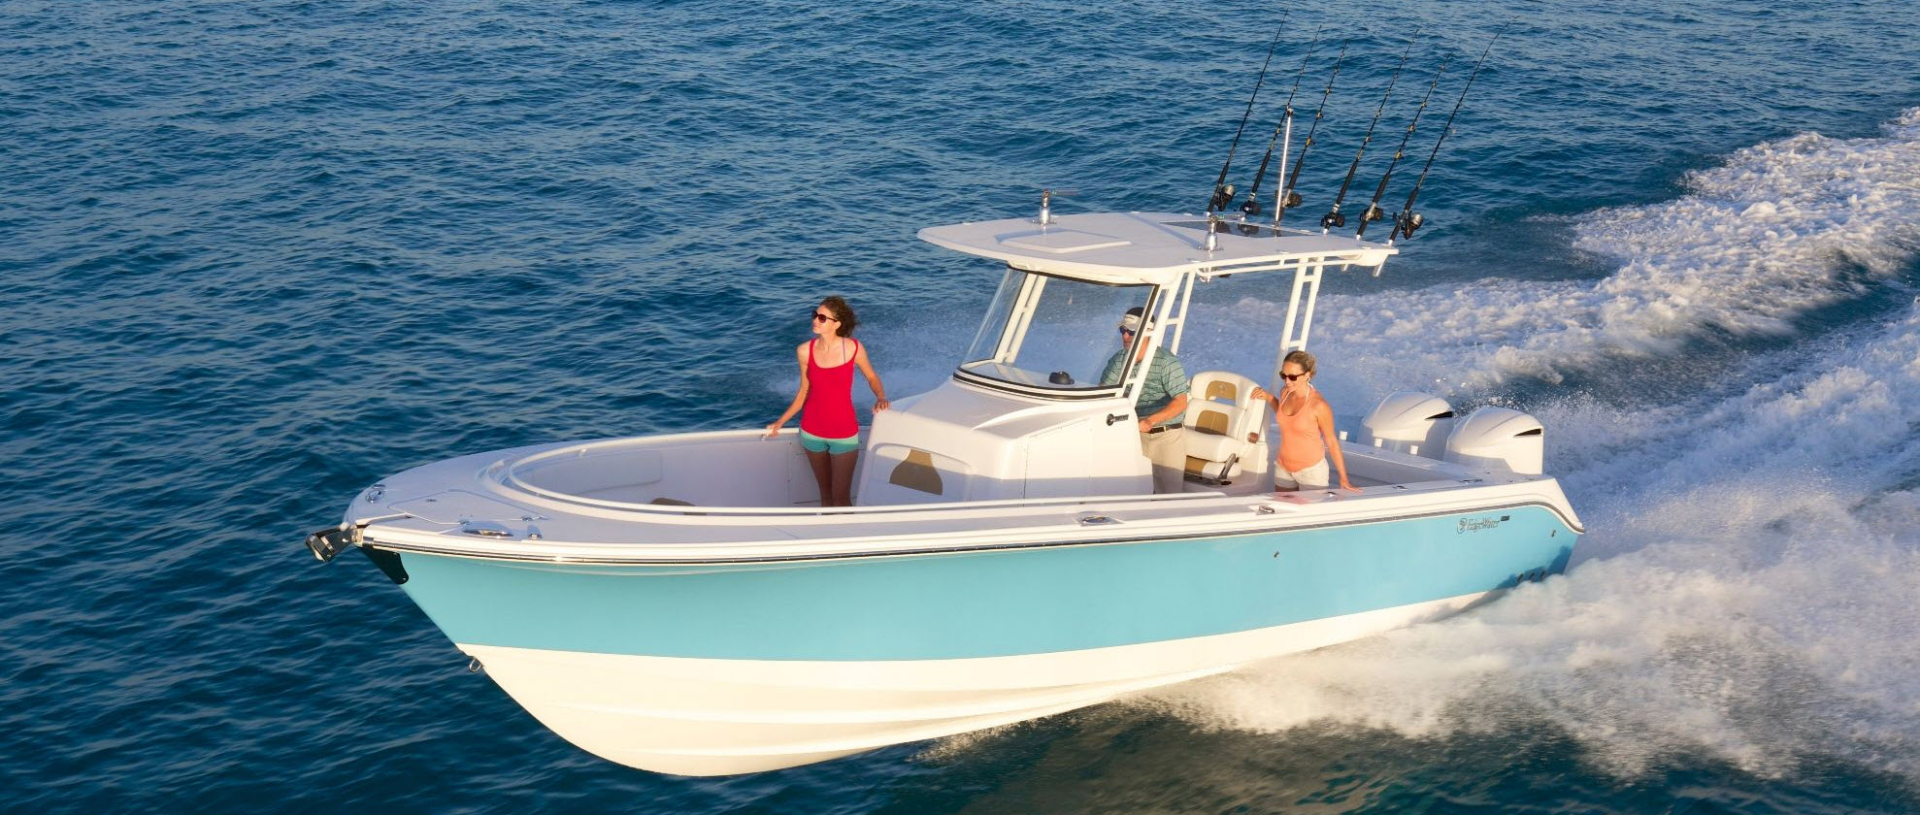 used-edgewater-boats-for-sale-header